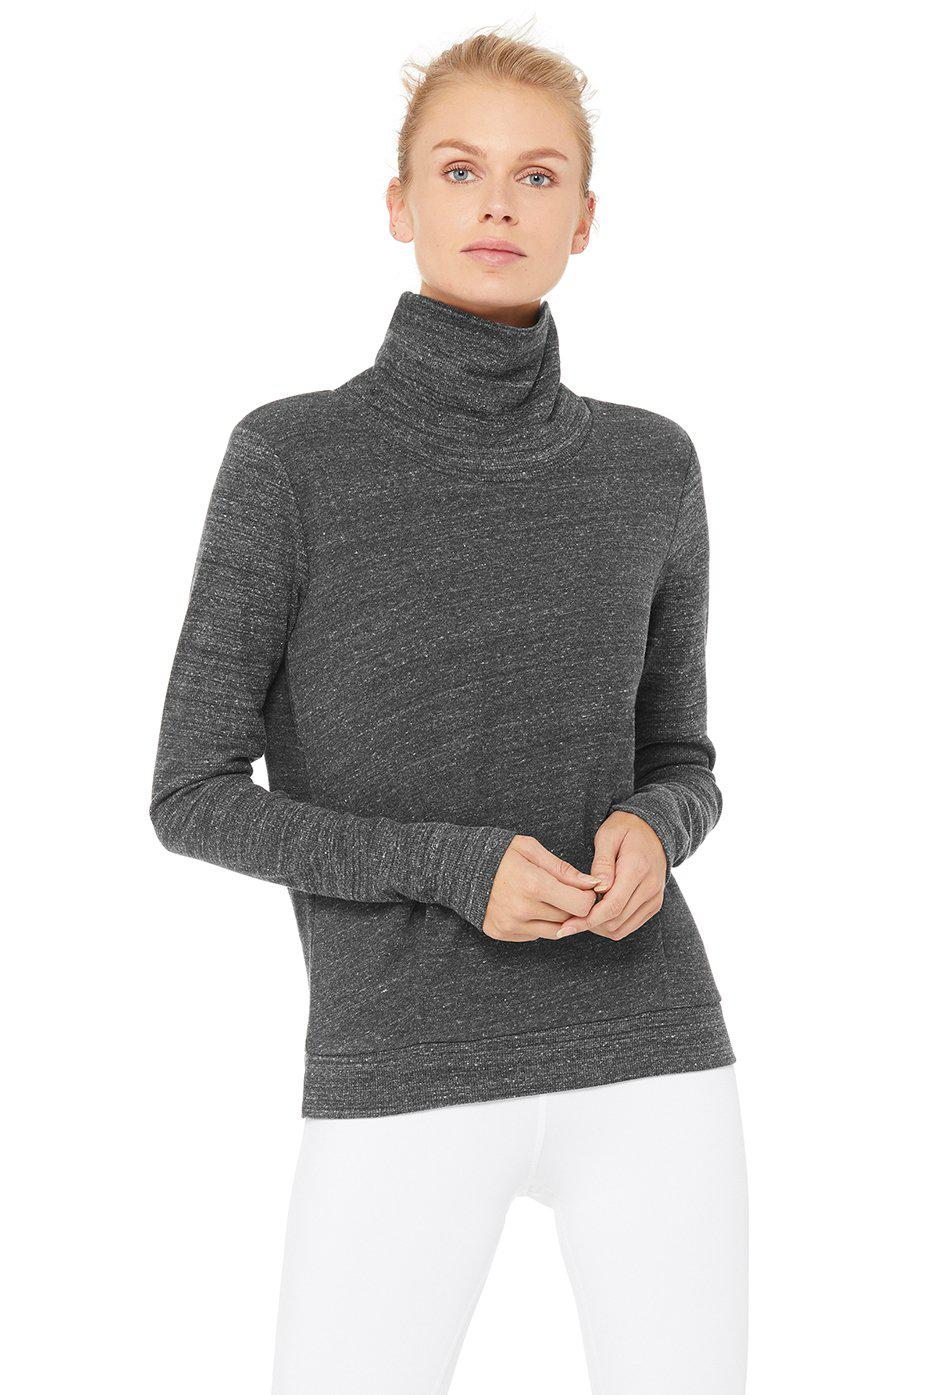 Clarity Long Sleeve - Anthracite Heather